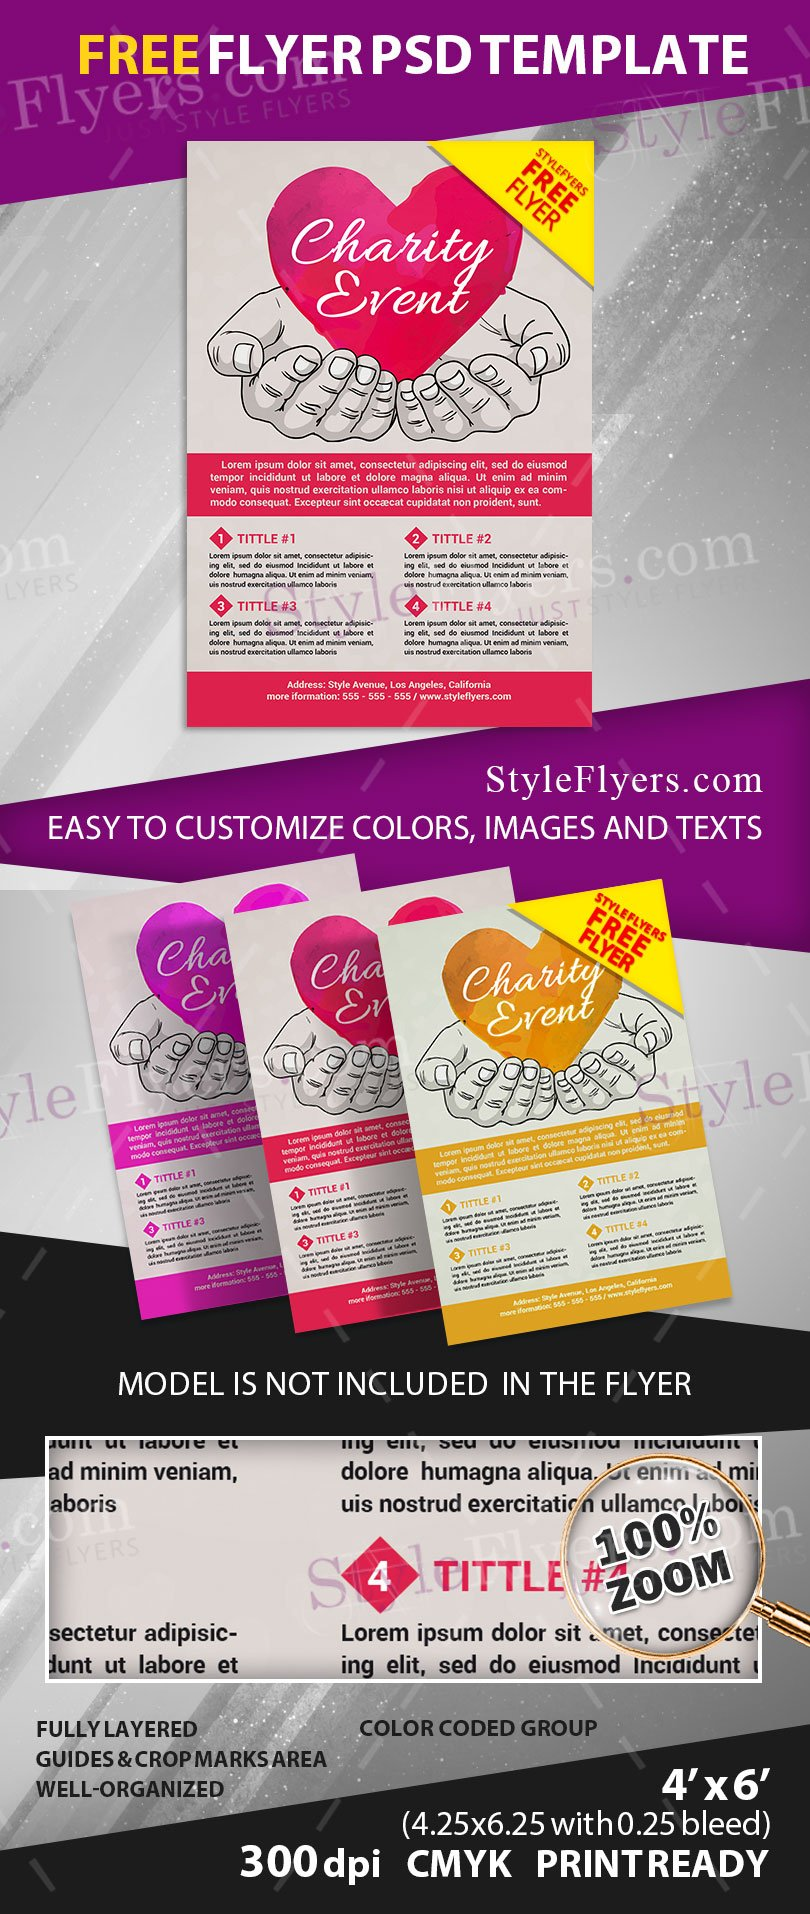 preview_charity_event_psd_flyer_template